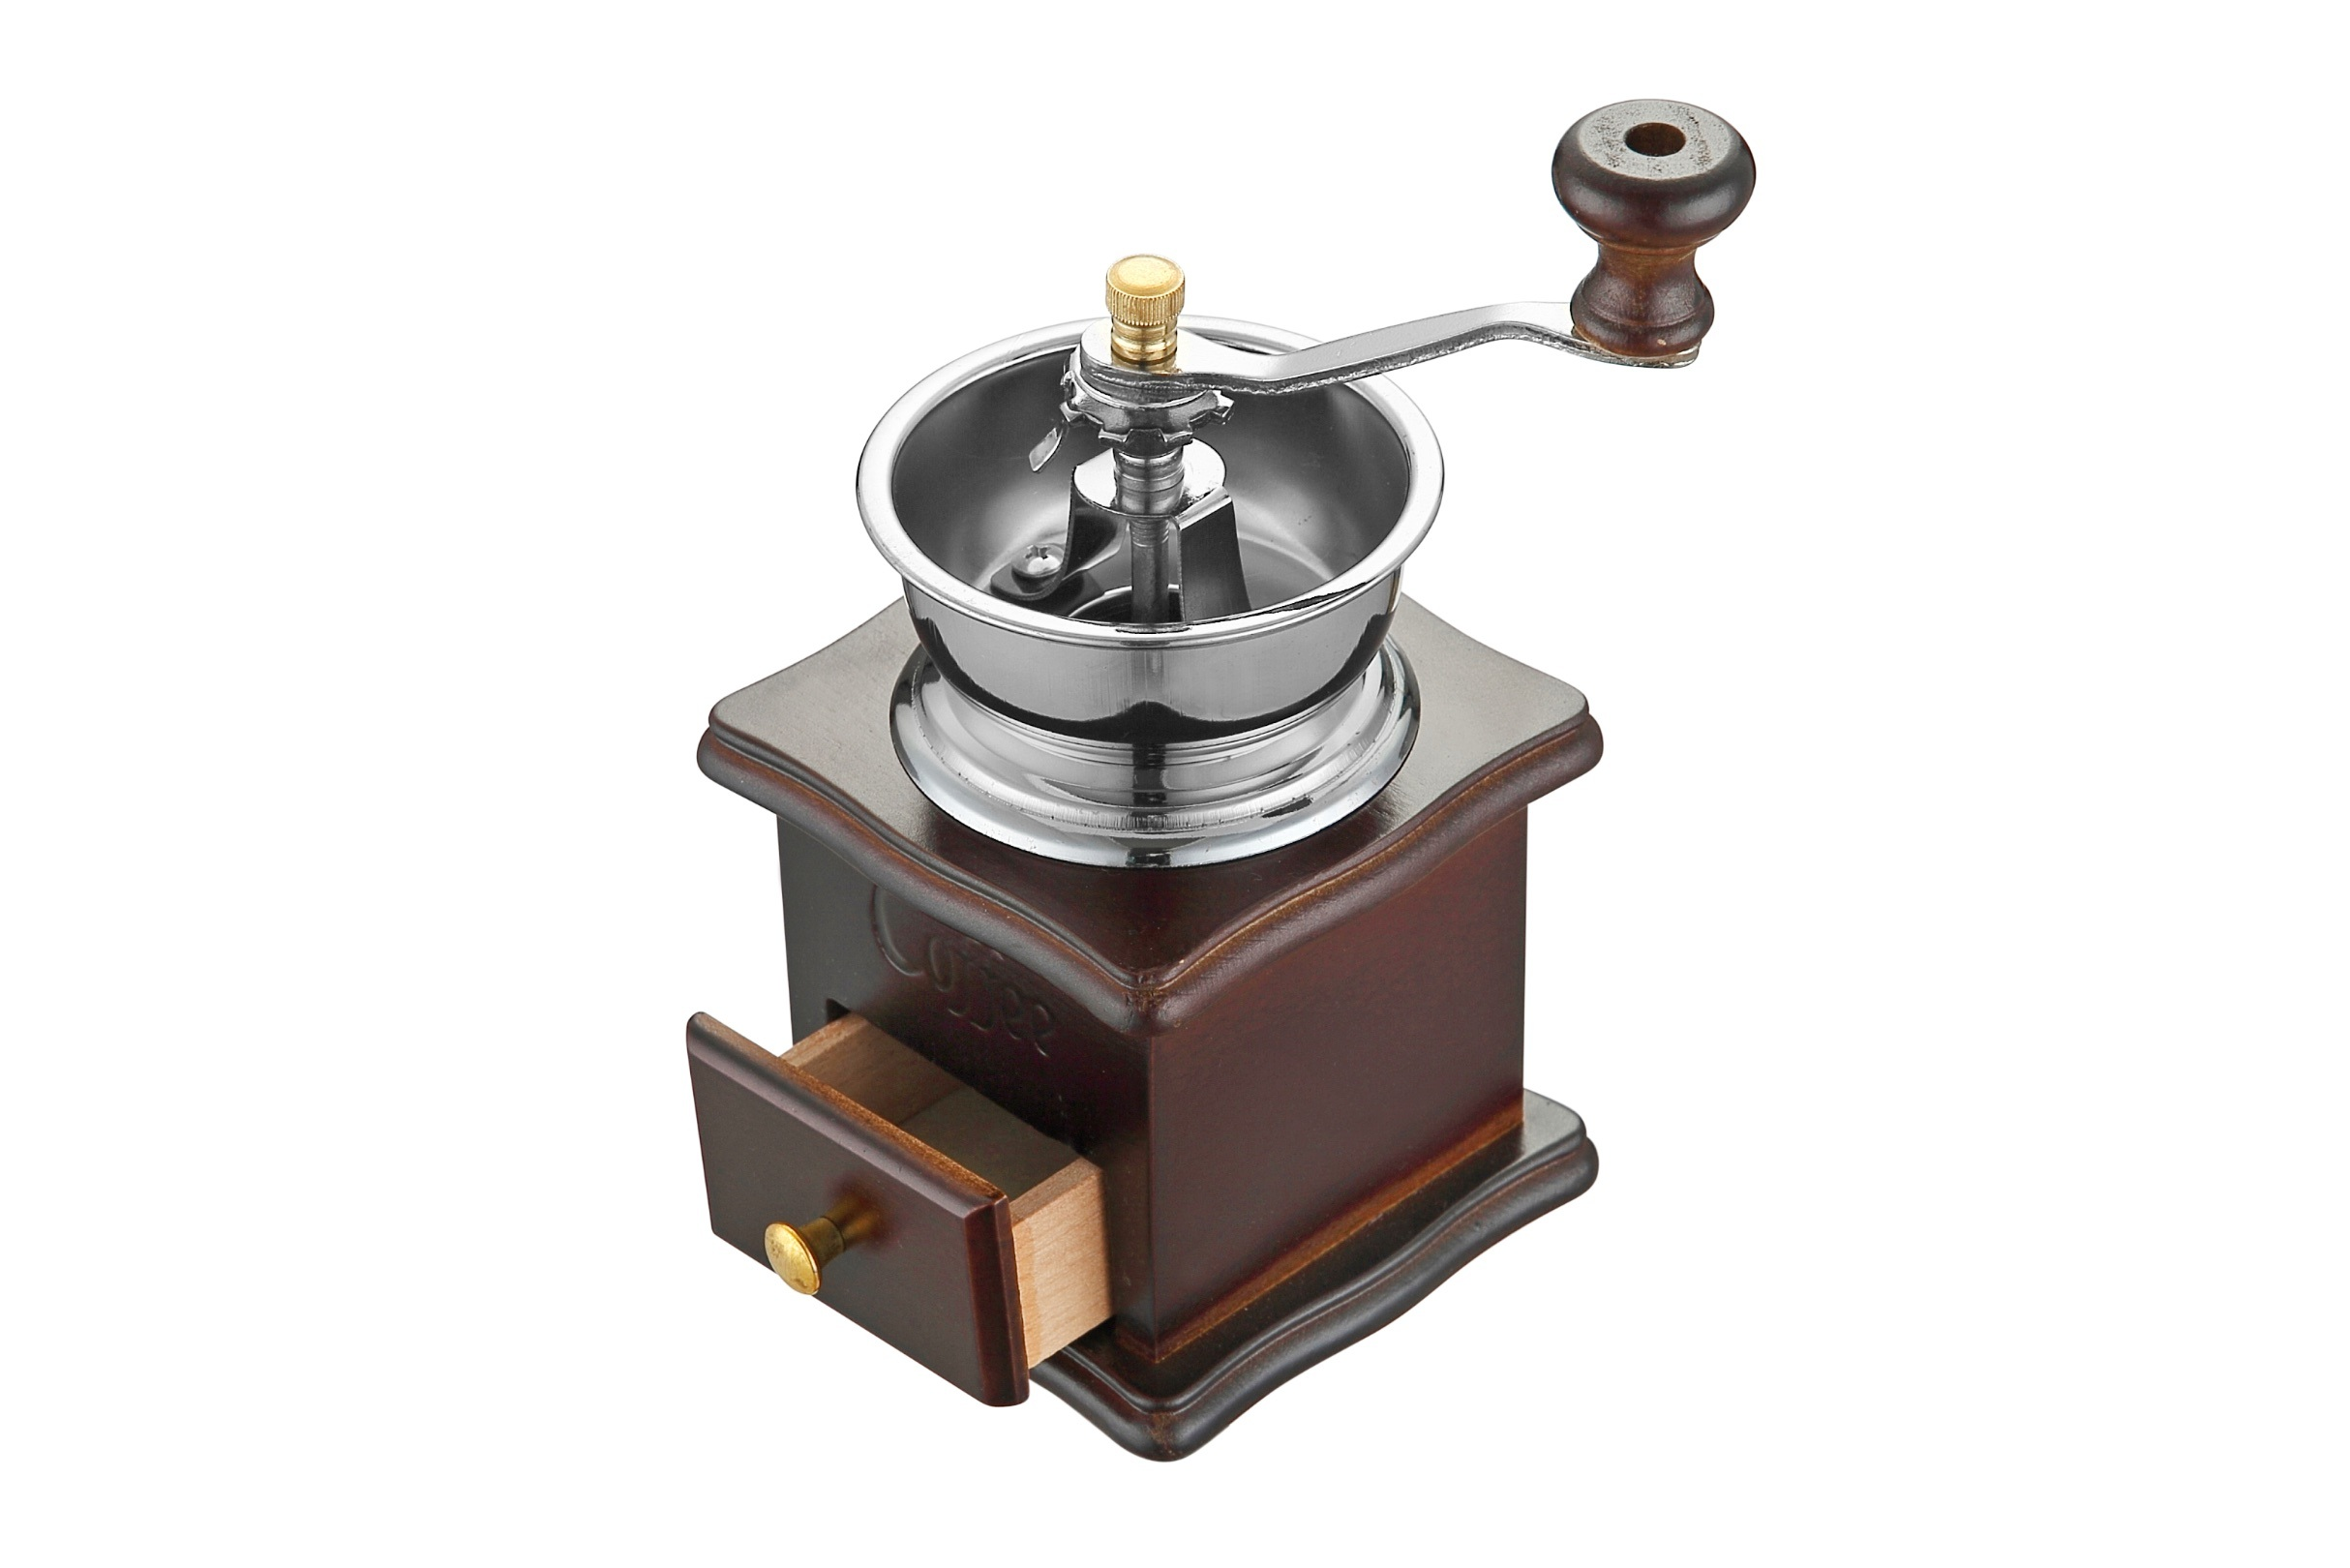 Zassenhaus Brasilia Homeware Grinding Coffee Mill